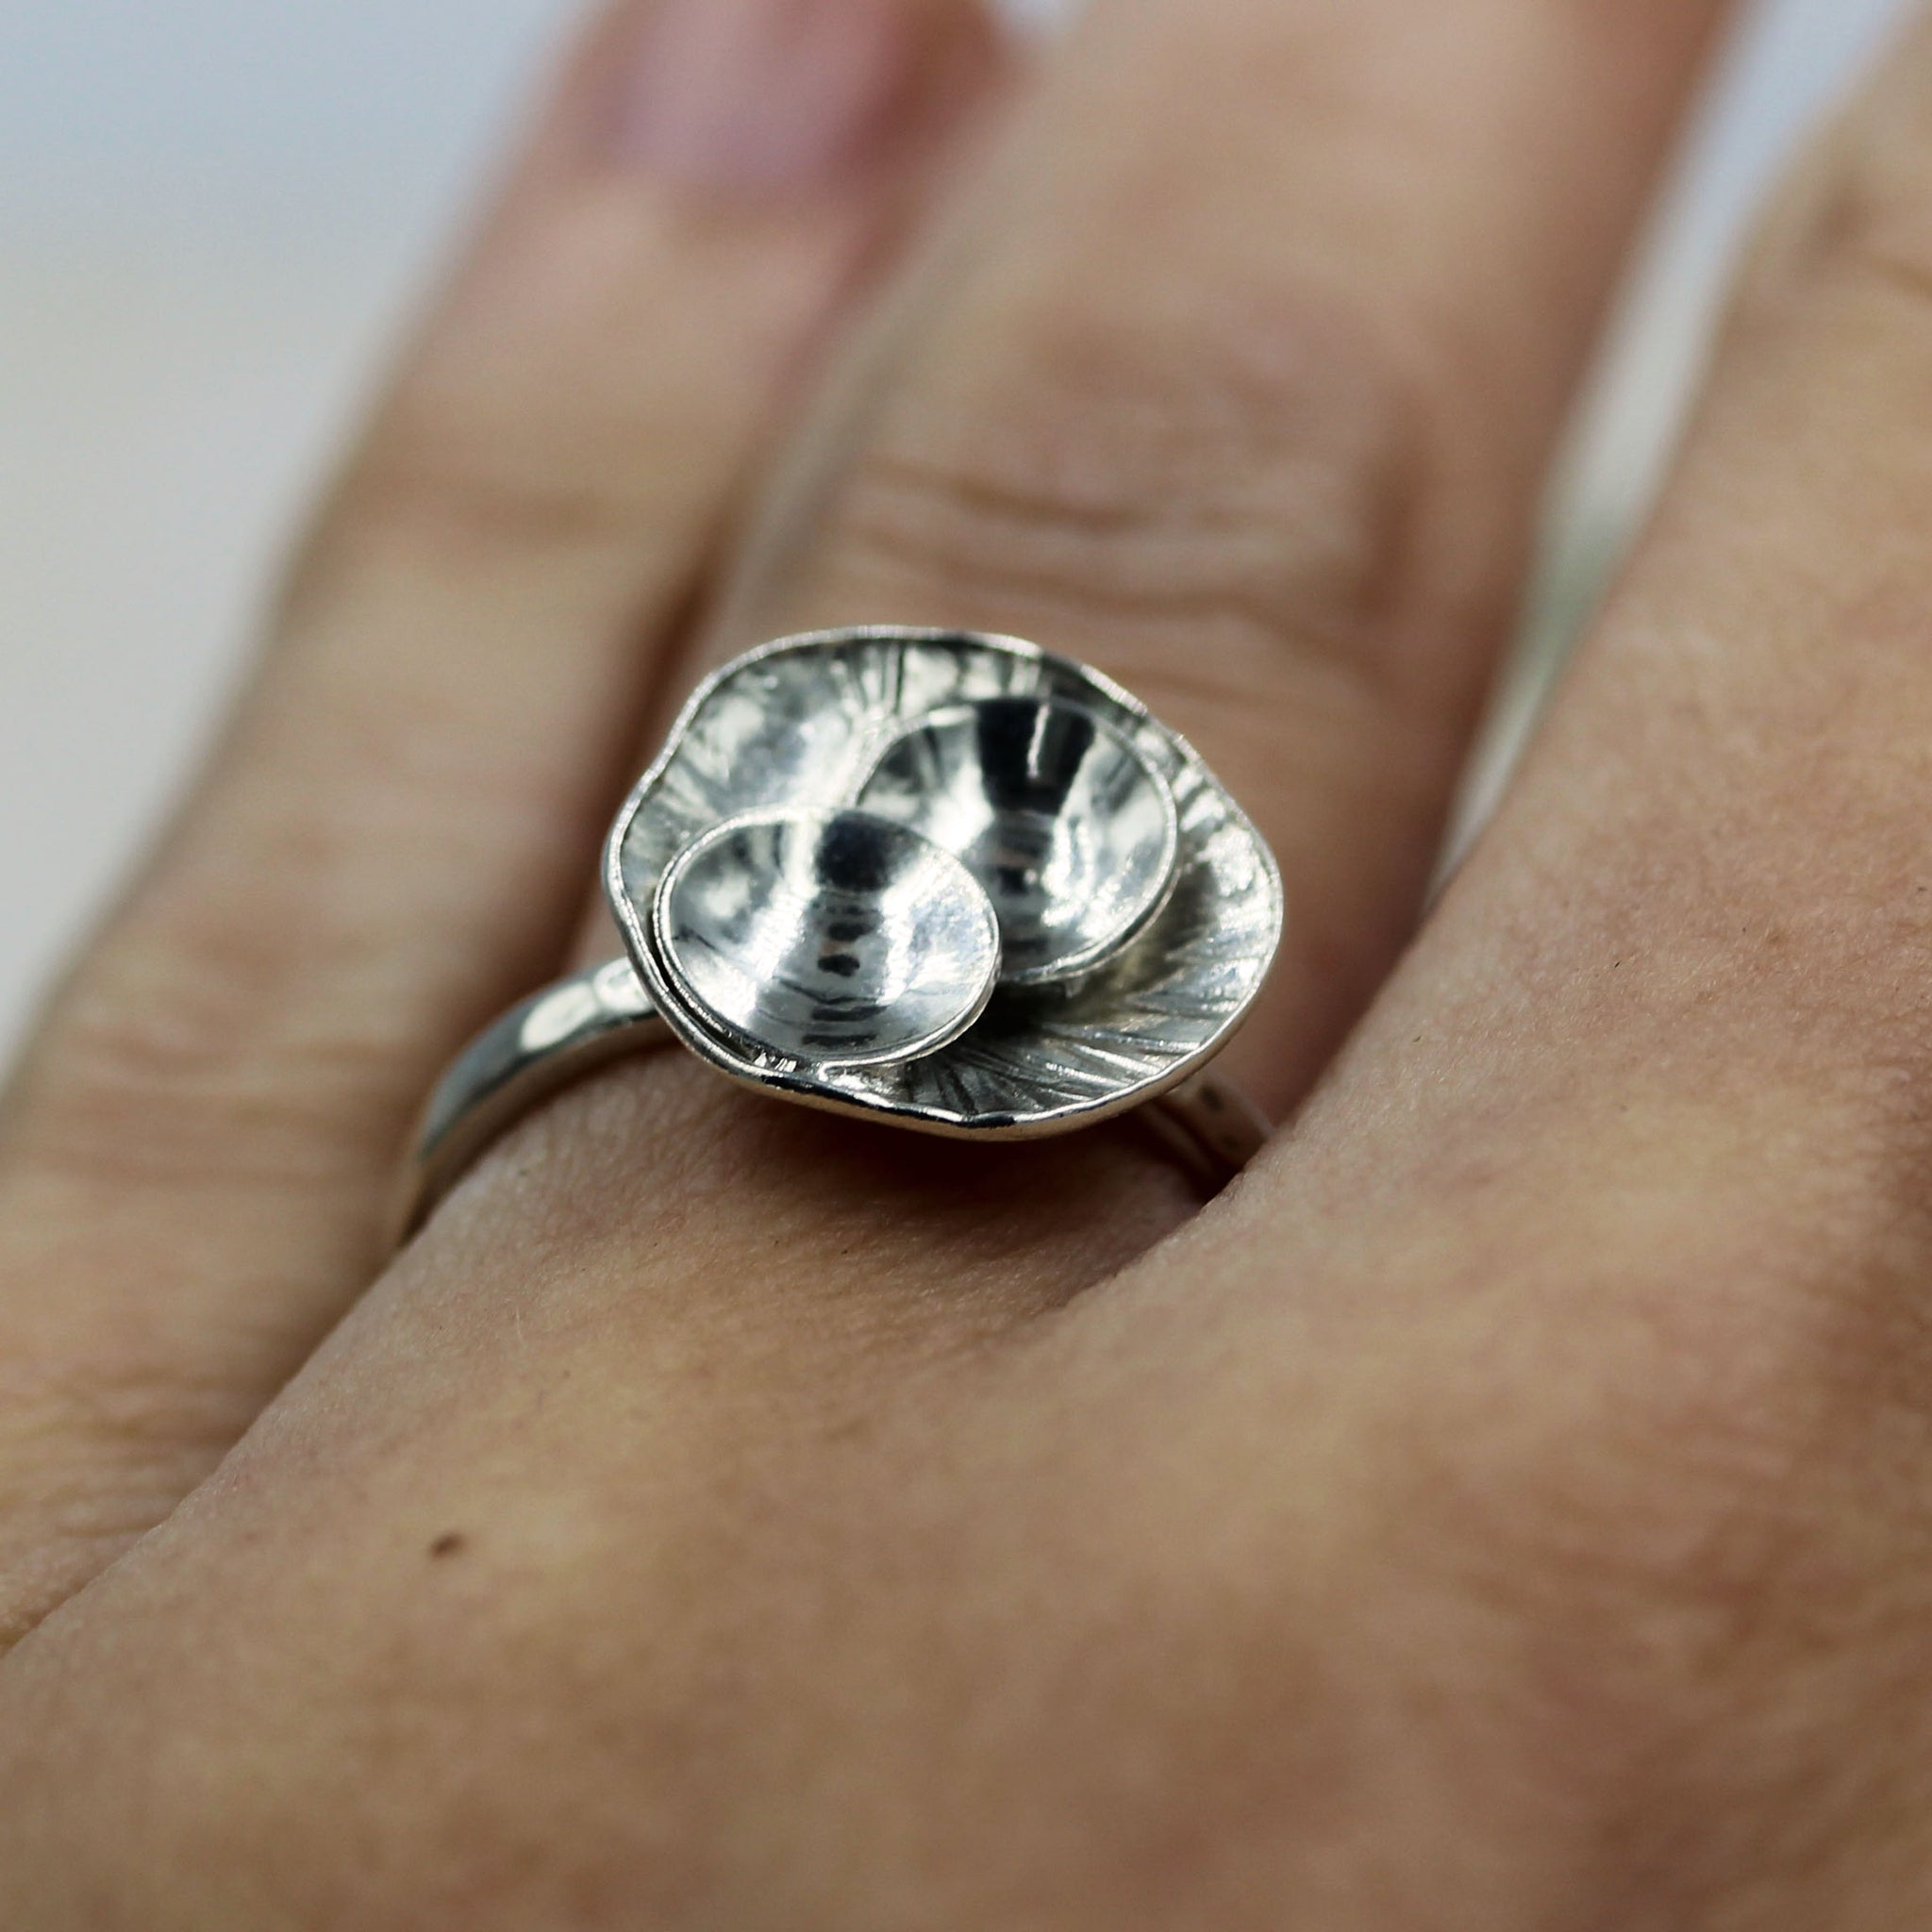 Rock pool inspired ring, sea inspired ring, handcrafted in recycled silver. by Gemma Tremayne Jewellery